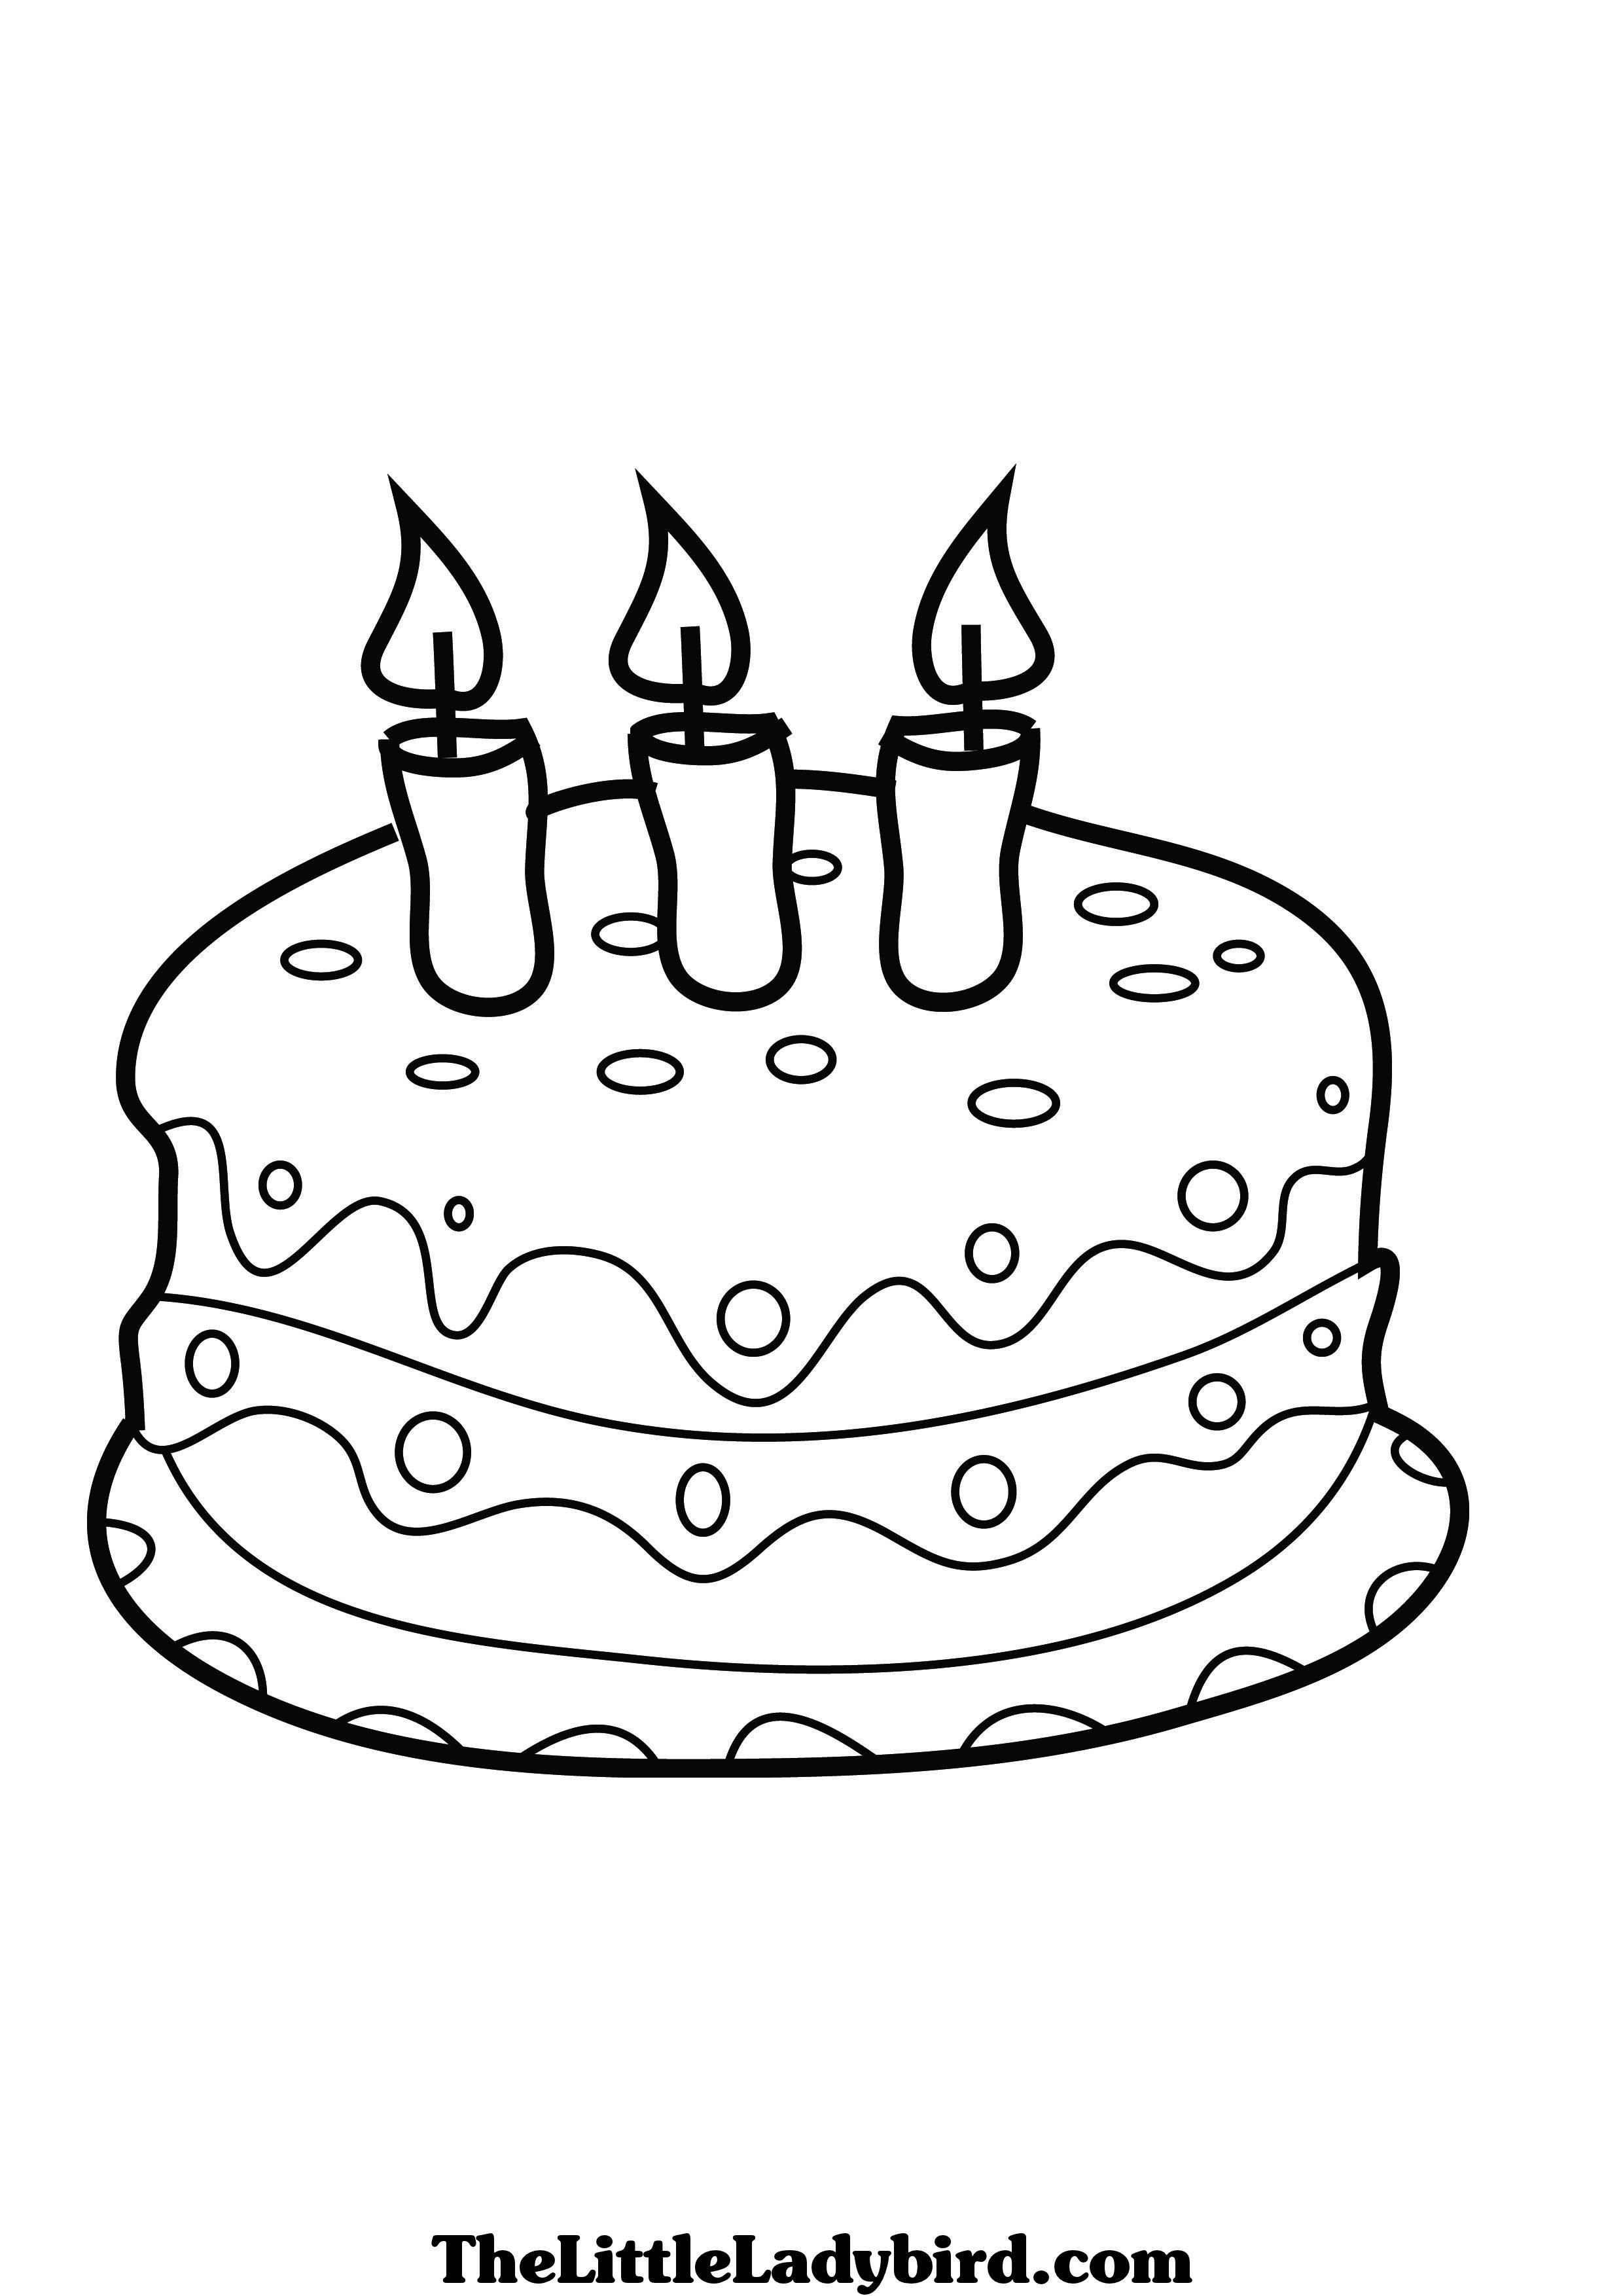 Coloring Page Of A Birthday Cake Pages The Little Cakepins Com Illustraties Verjaardag Thema